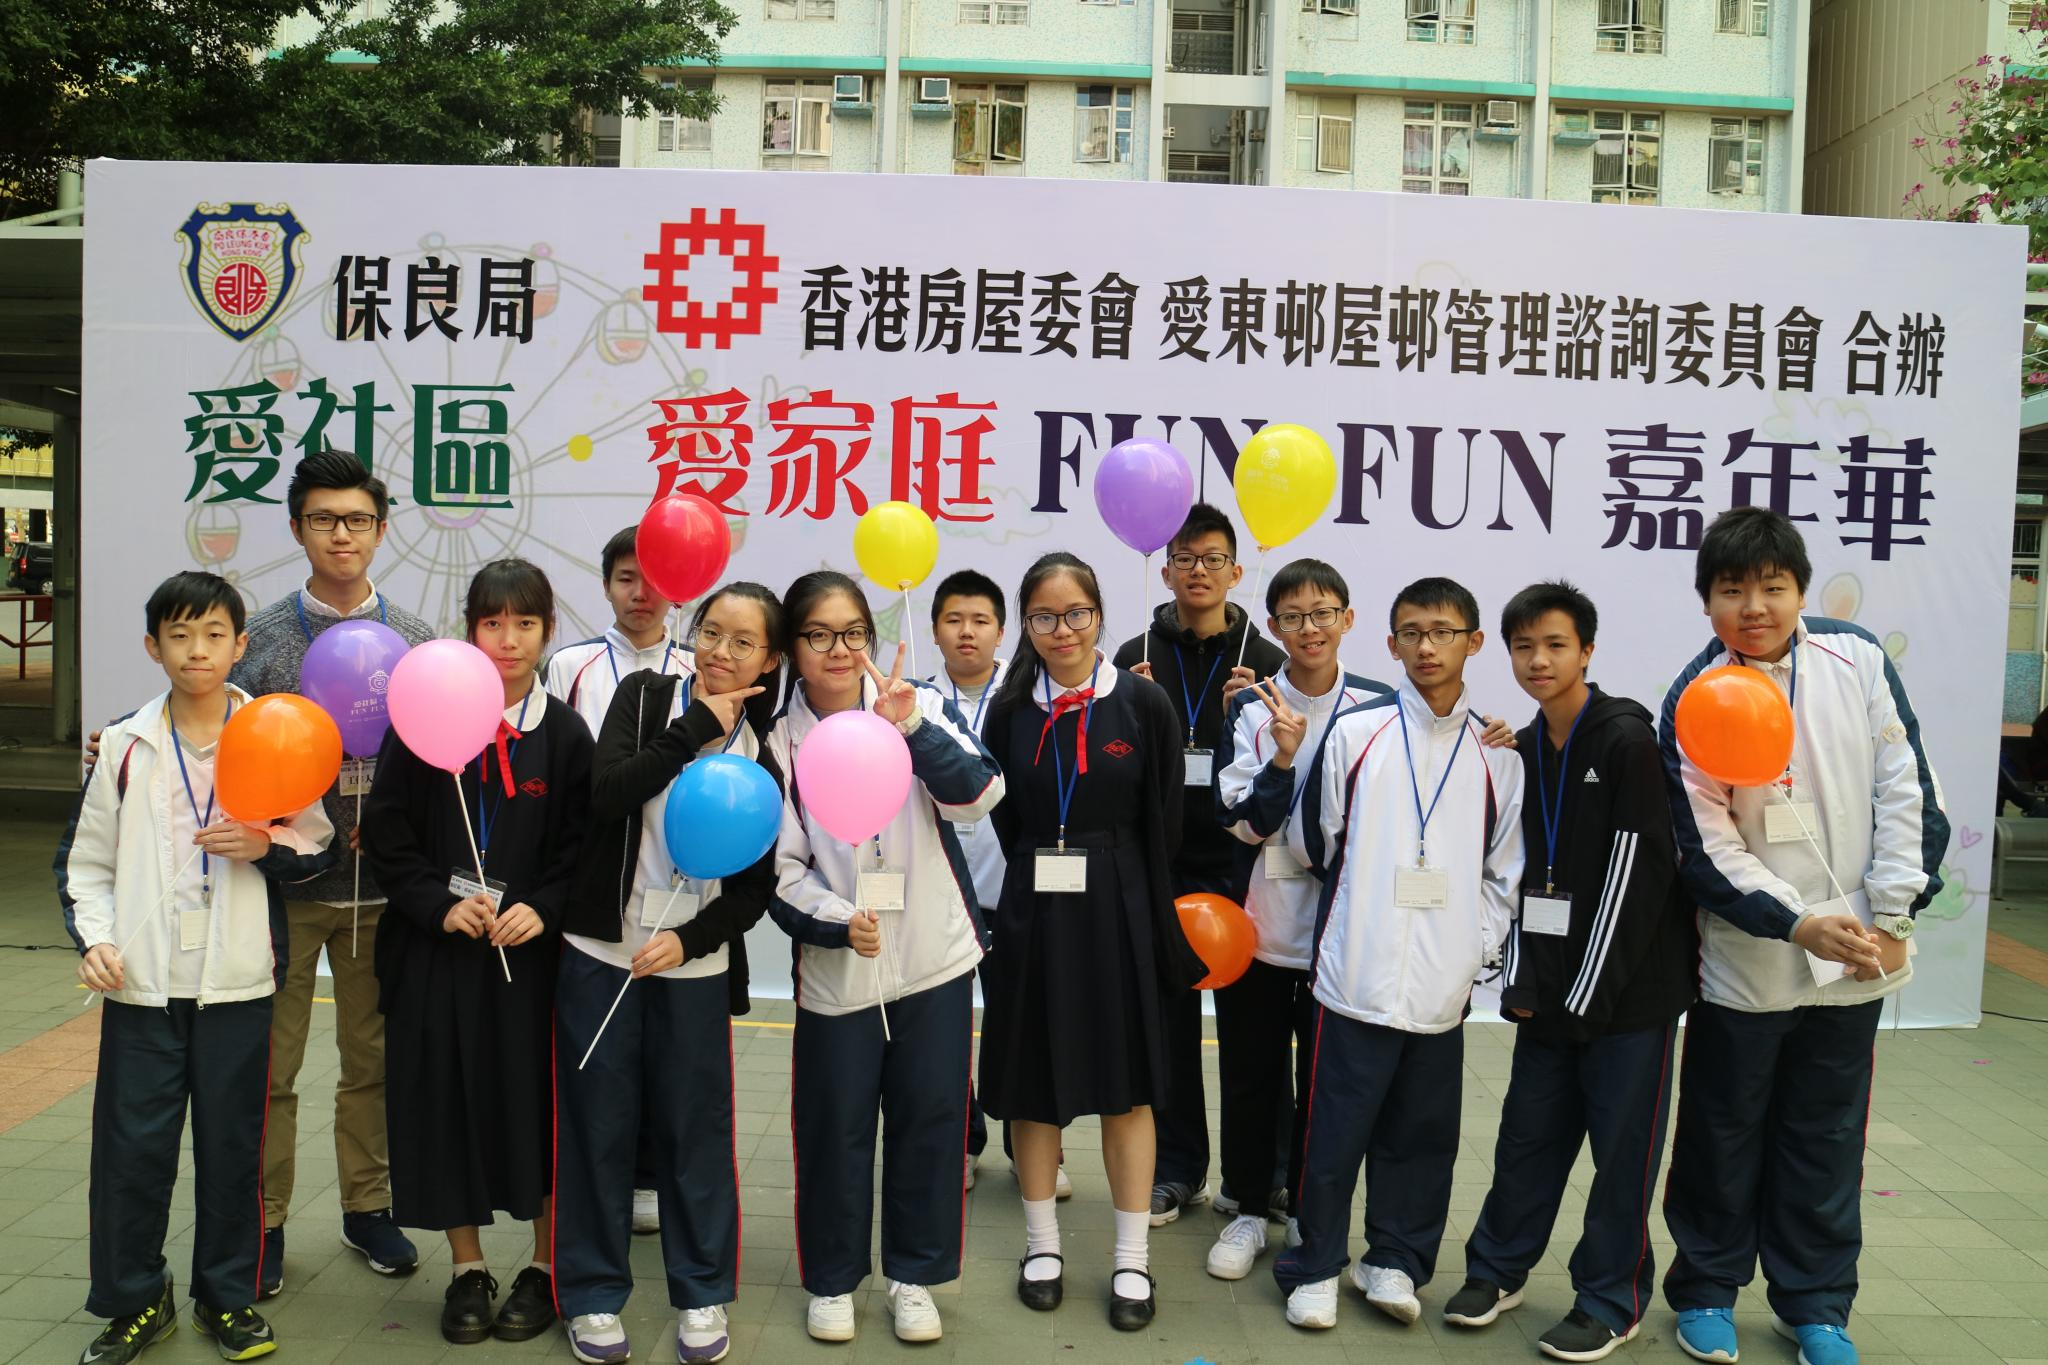 Our social service team members participated in a community service in a carnival which is organized in Oi Tung Estate.